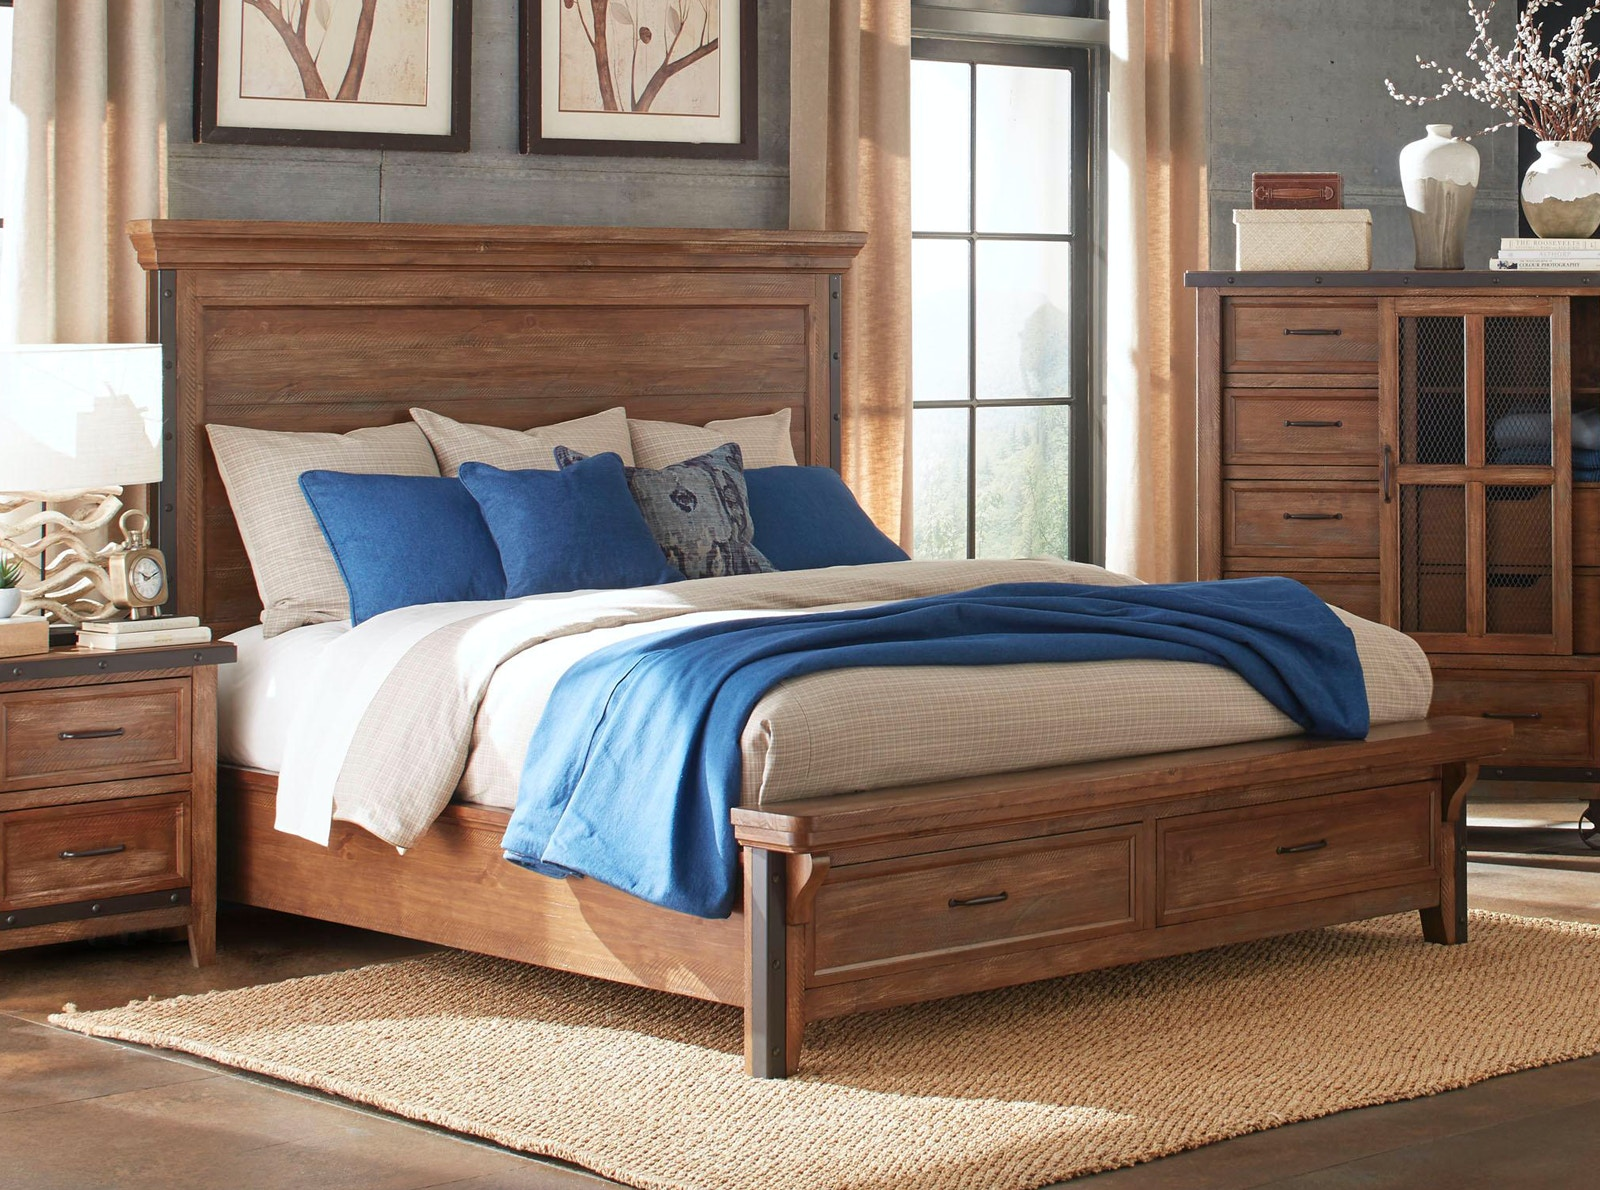 signature item b sawyer storage bed set ashley bedroom by queen design products number qsb